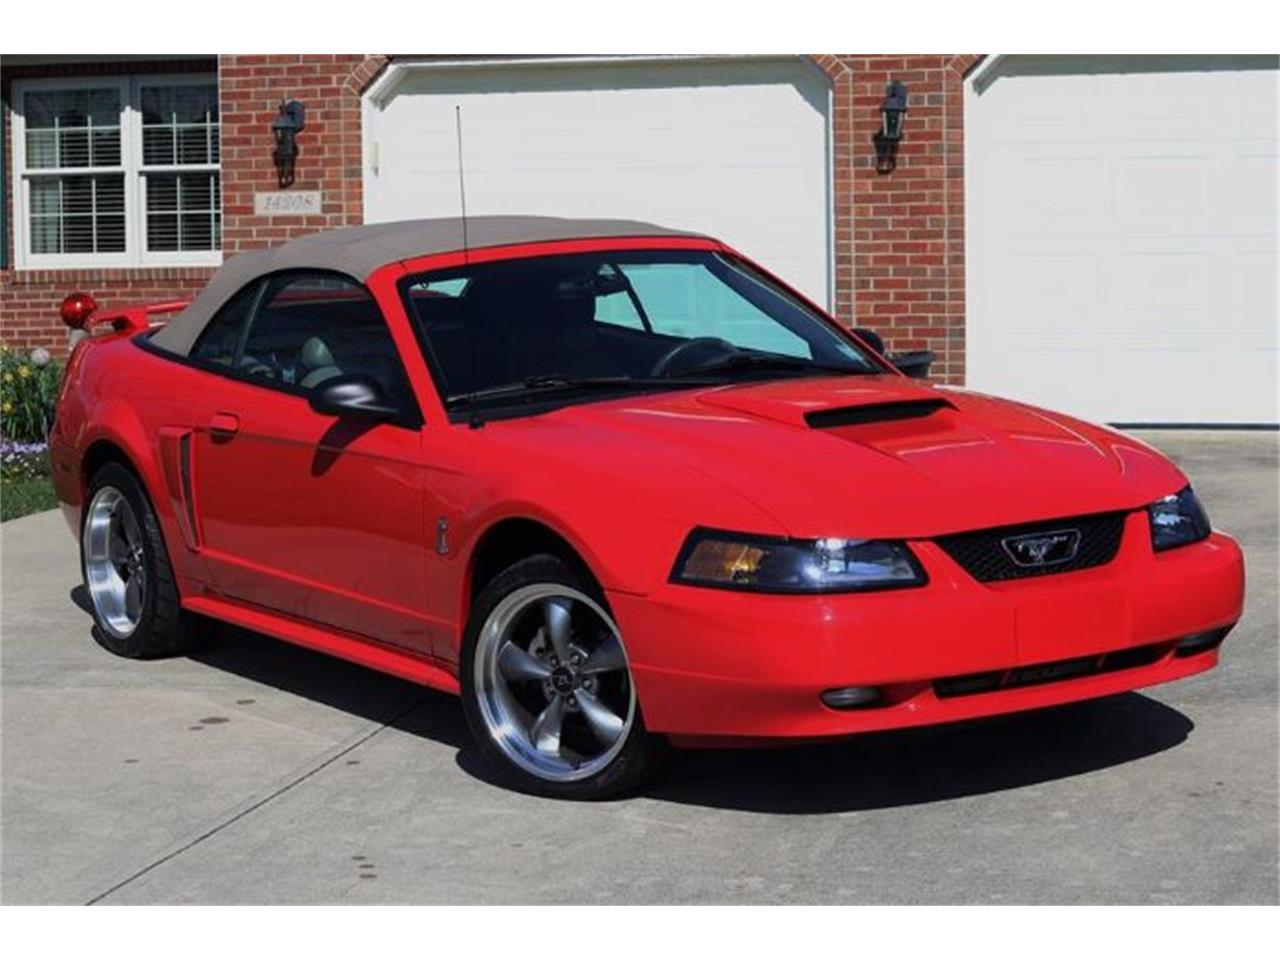 Large Picture Of 02 Mustang Oscm